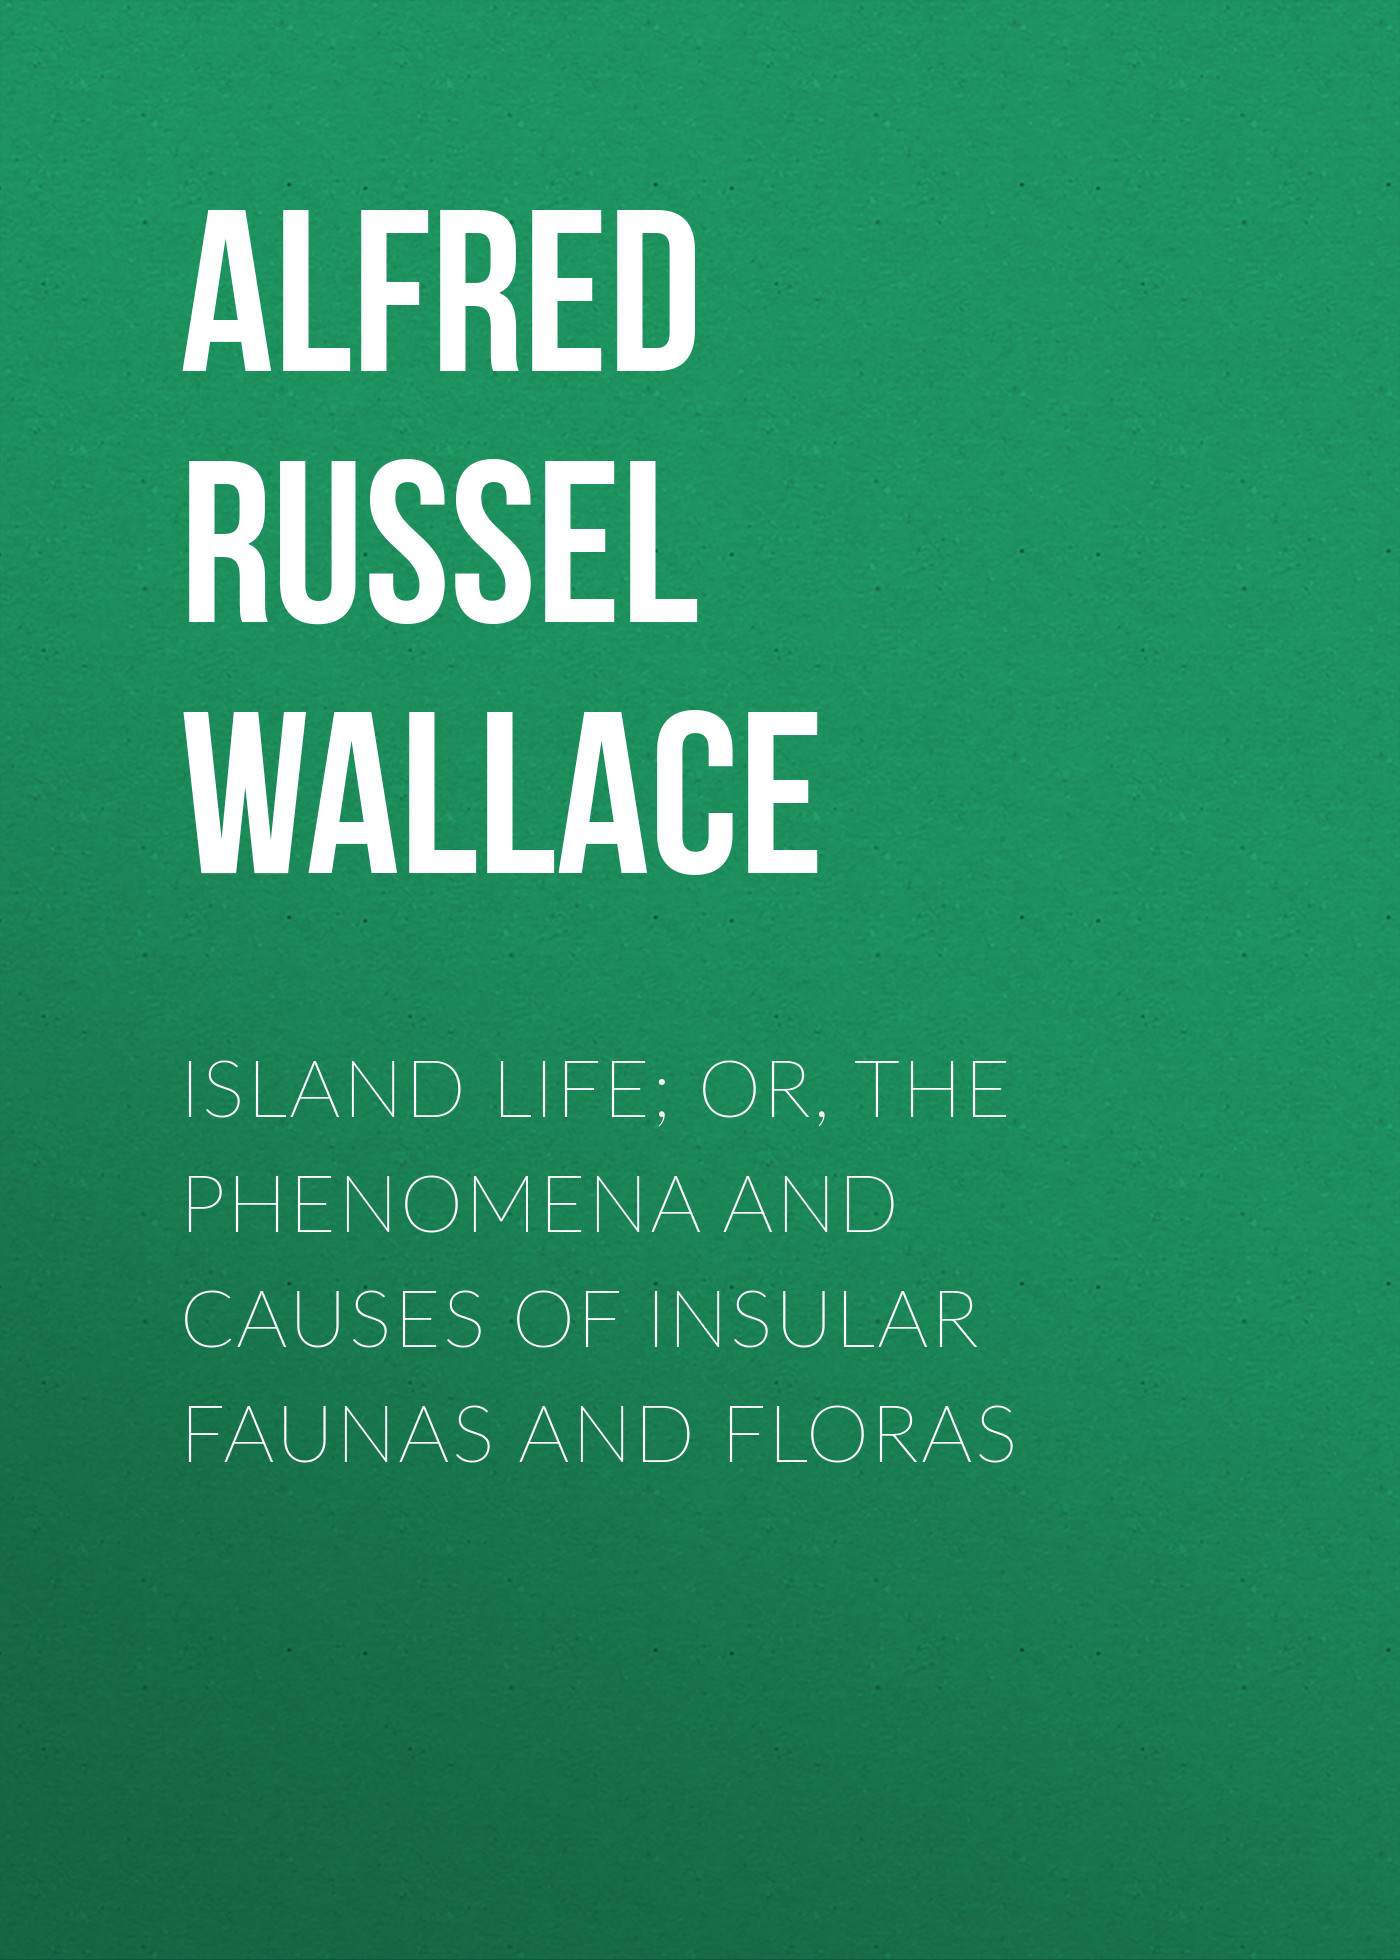 Alfred Russel Wallace Island Life; Or, The Phenomena and Causes of Insular Faunas and Floras